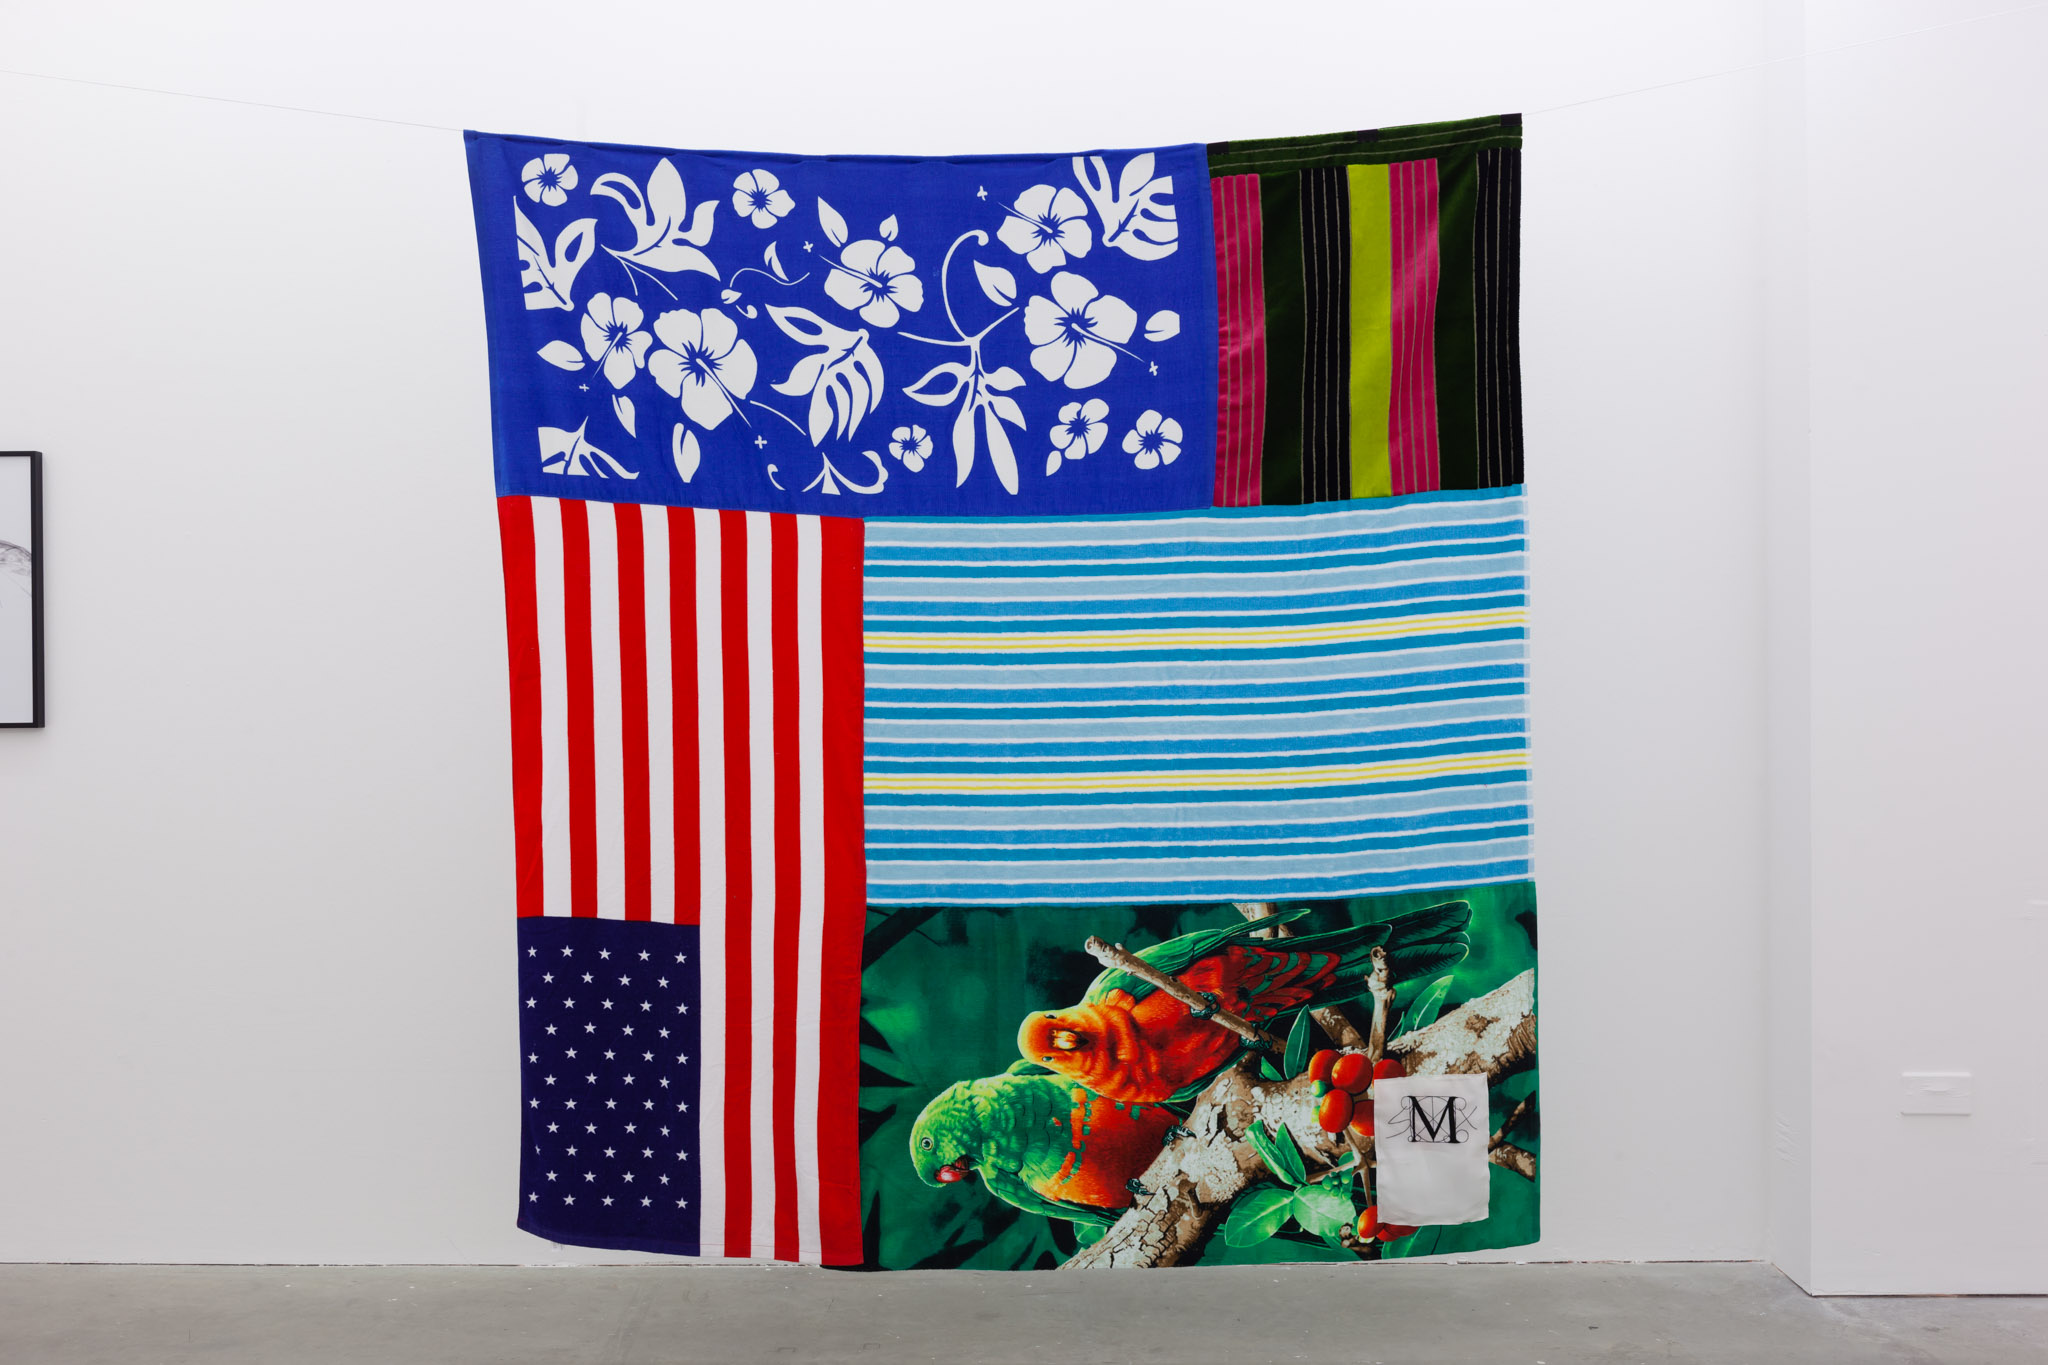 Decorative Wallhanging, 2014, towels, 210 x 205 cm, 82.68 x 80.71 ins. House of Gaga presents Single Moms